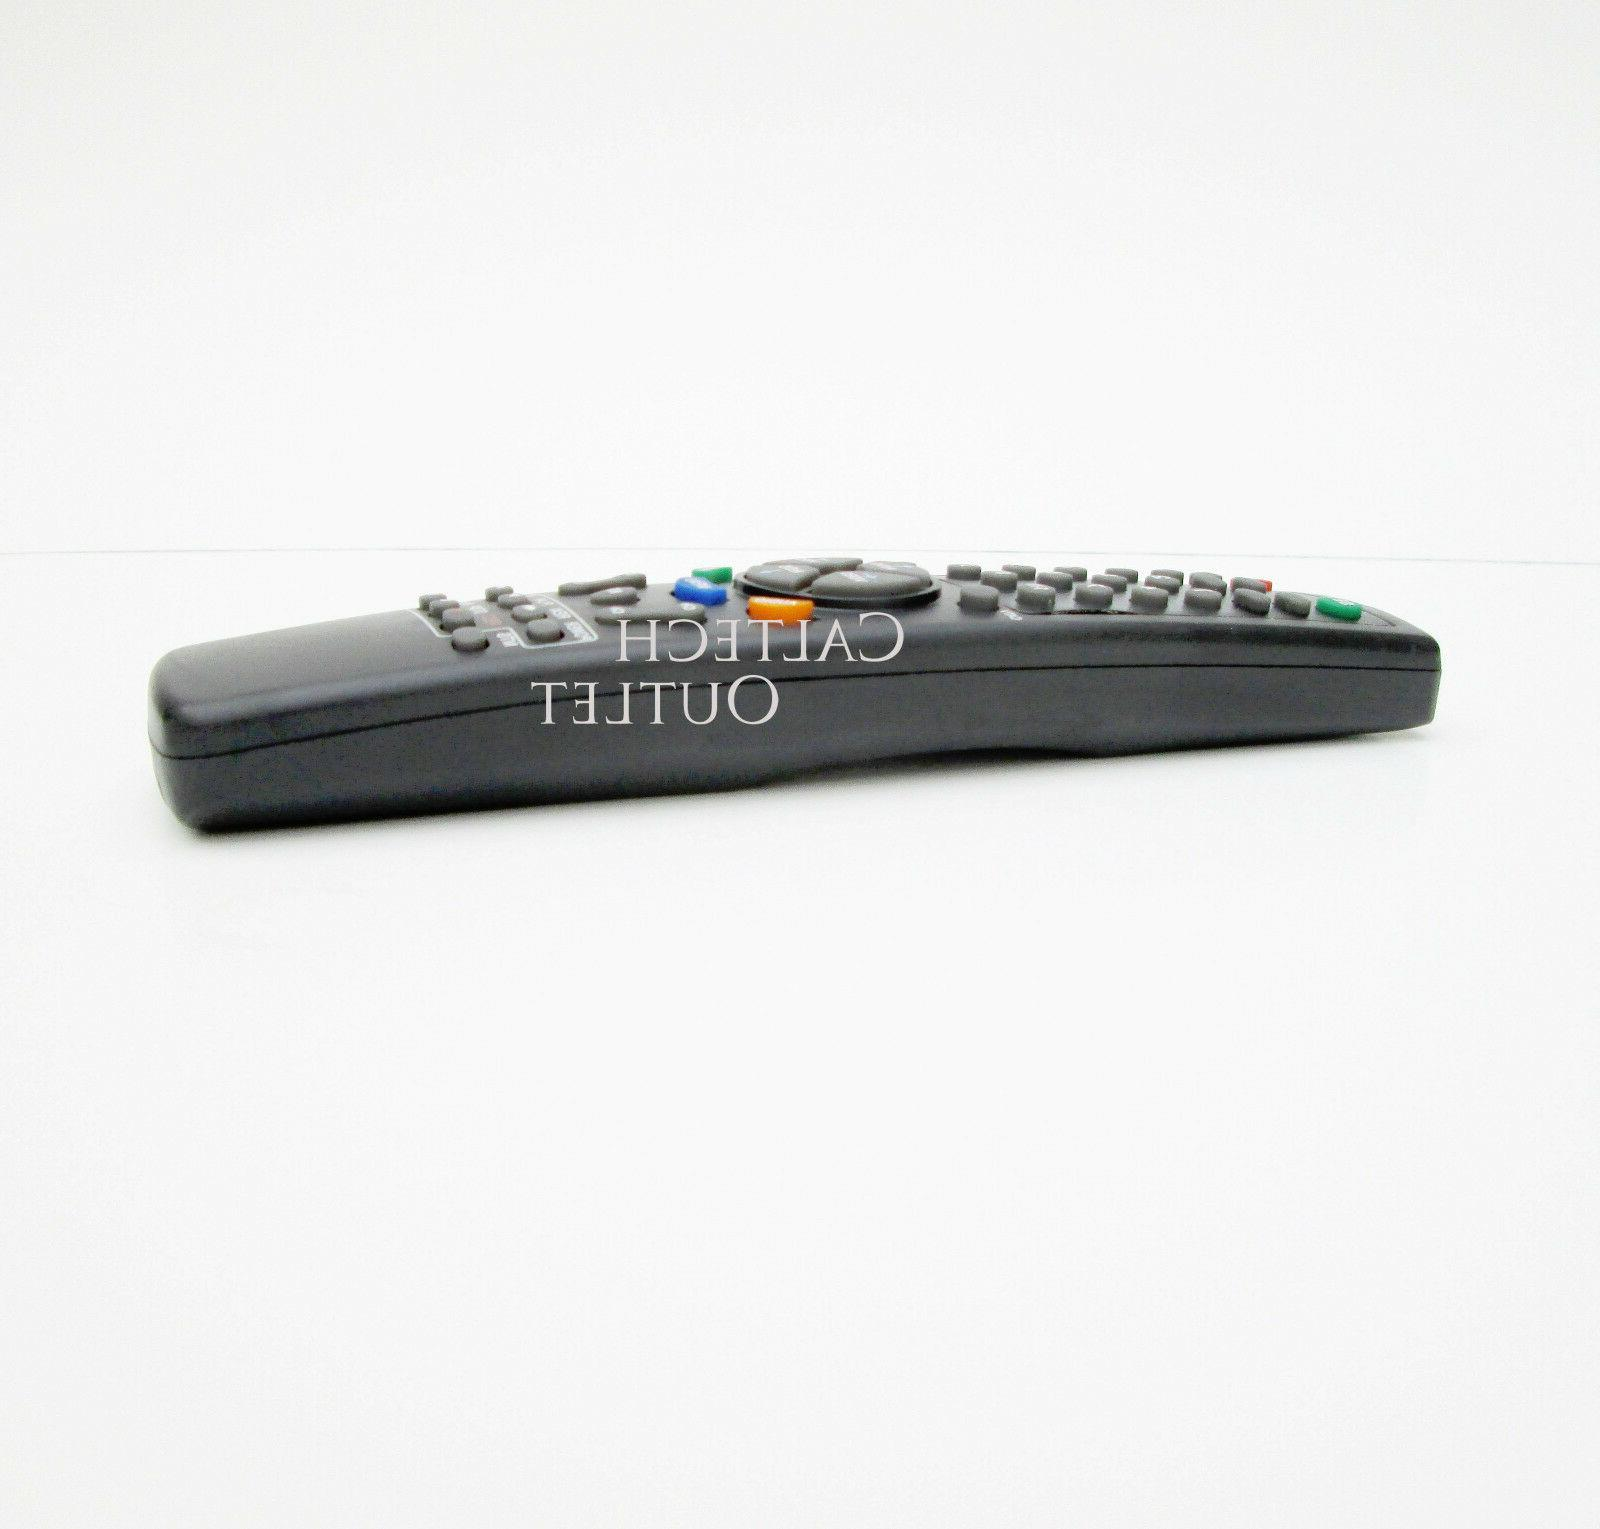 Universal TV Remote Control All-In-One Smart TV/Cable/DVD Pl